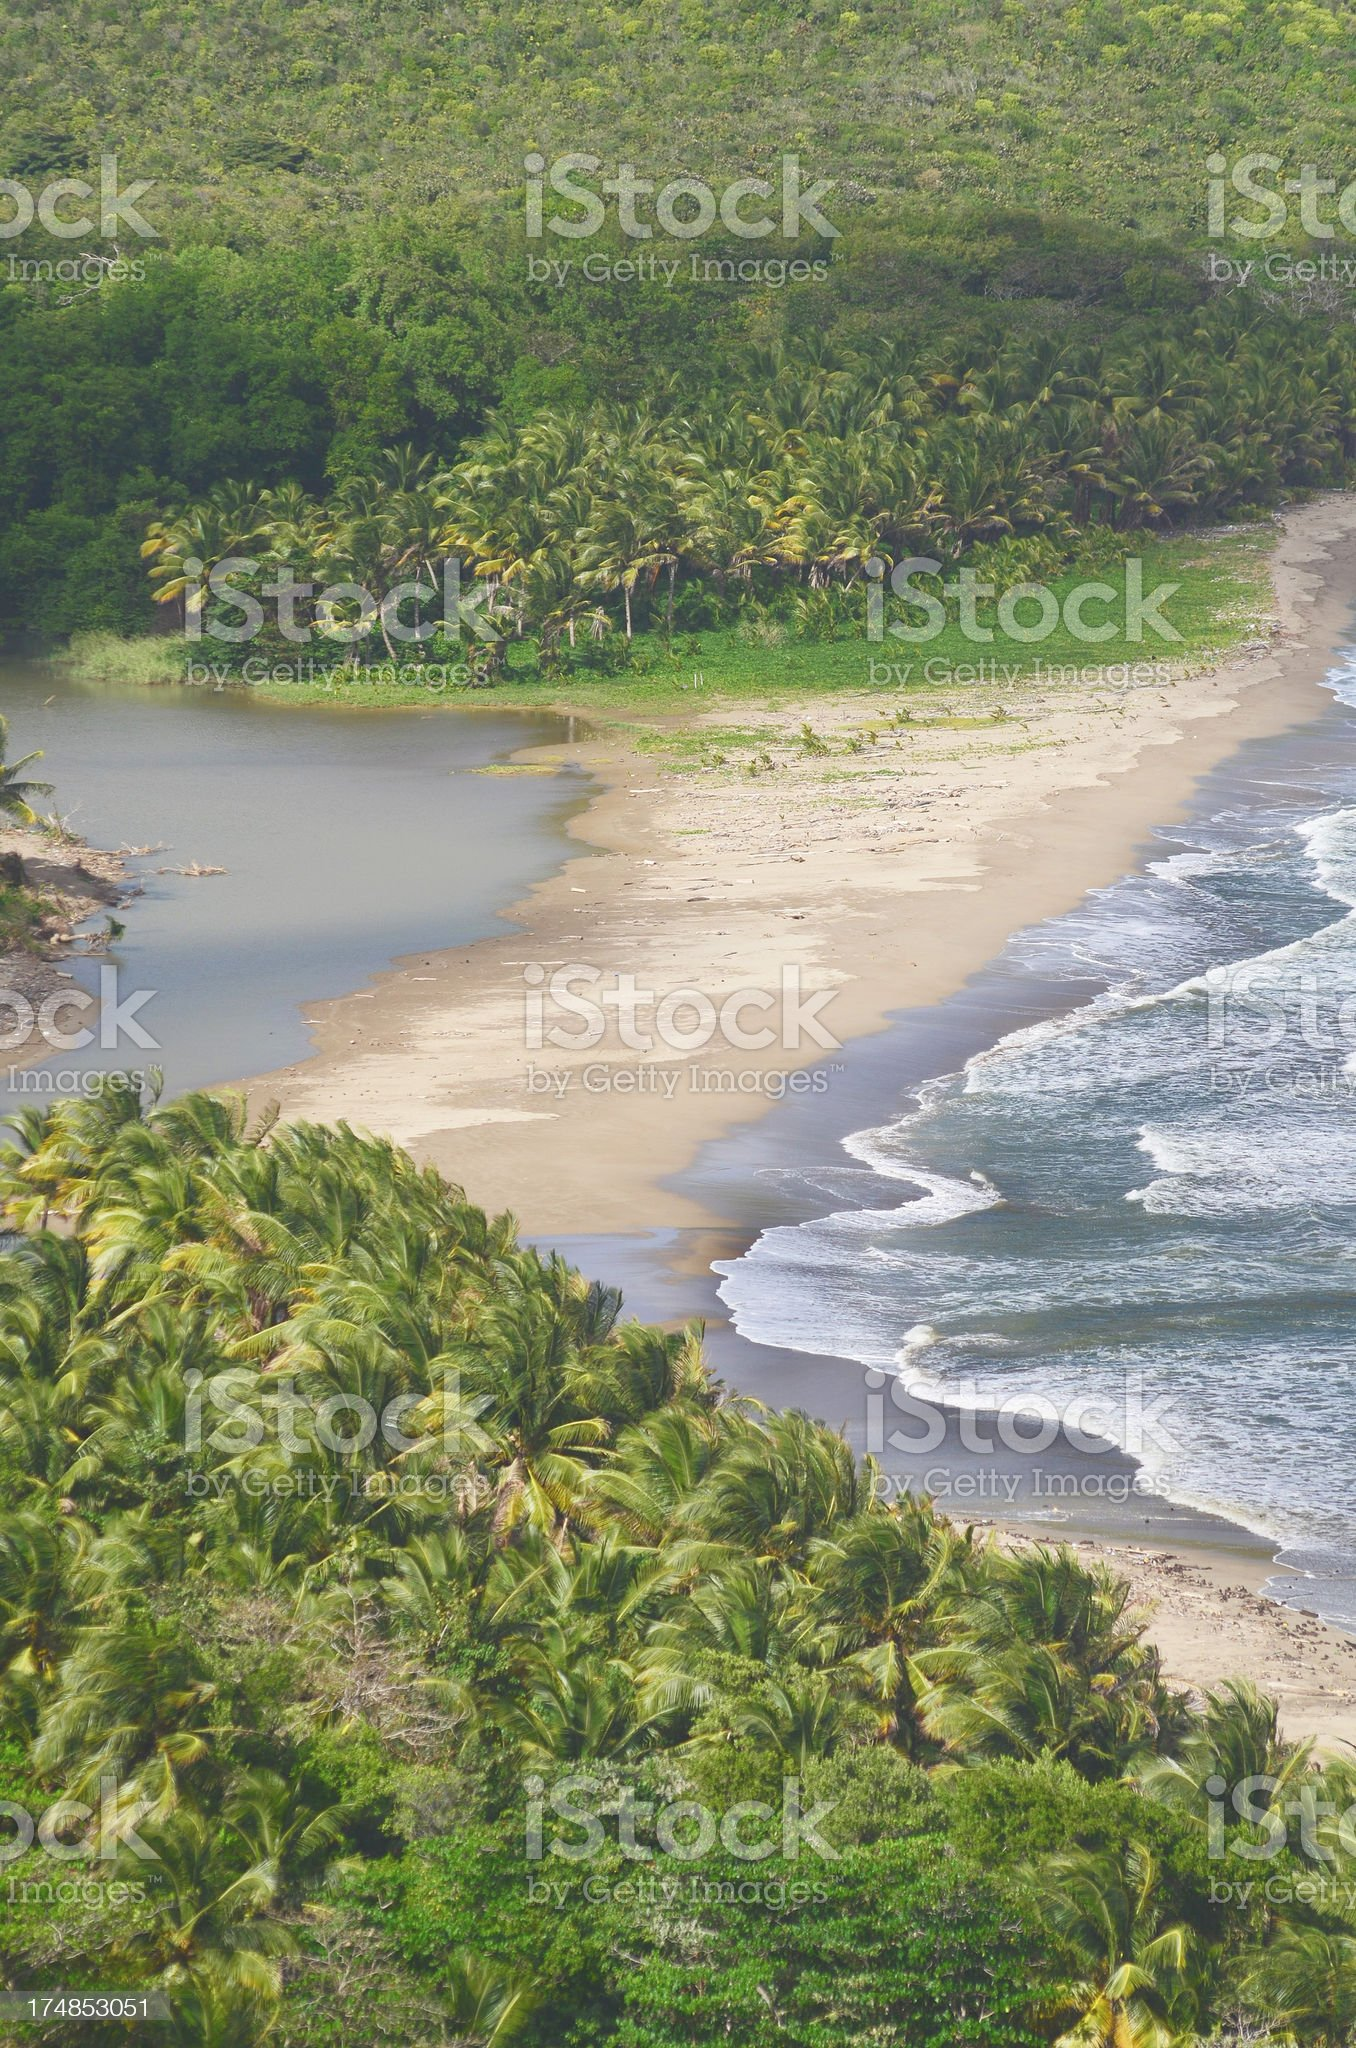 scenic rough beach with sand bank royalty-free stock photo